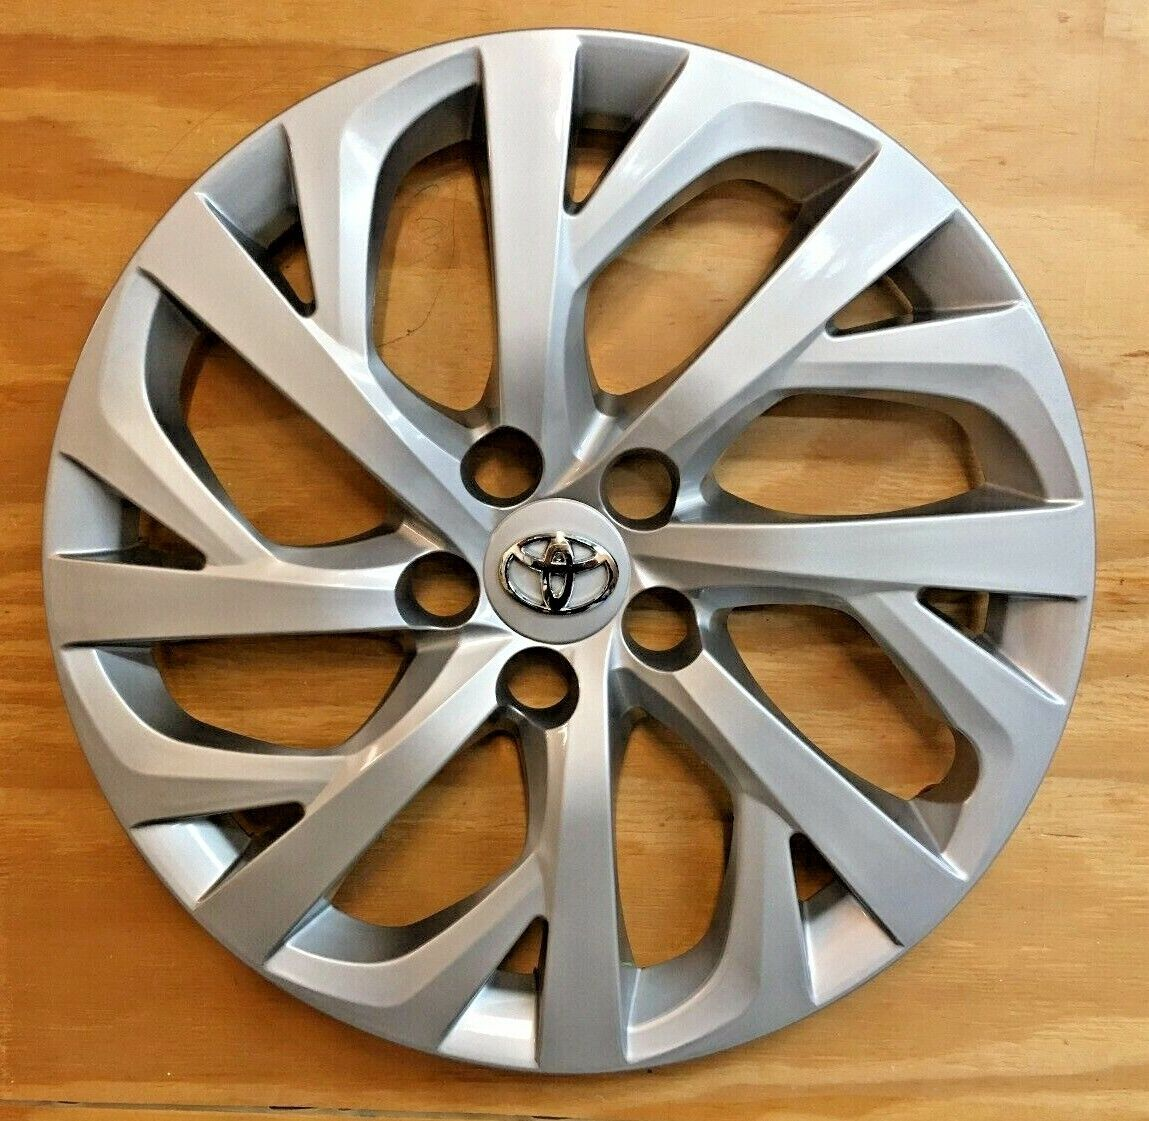 1x SILVER Hubcap will fit your 2017 2018 2019 TOYOTA COROLLA 16